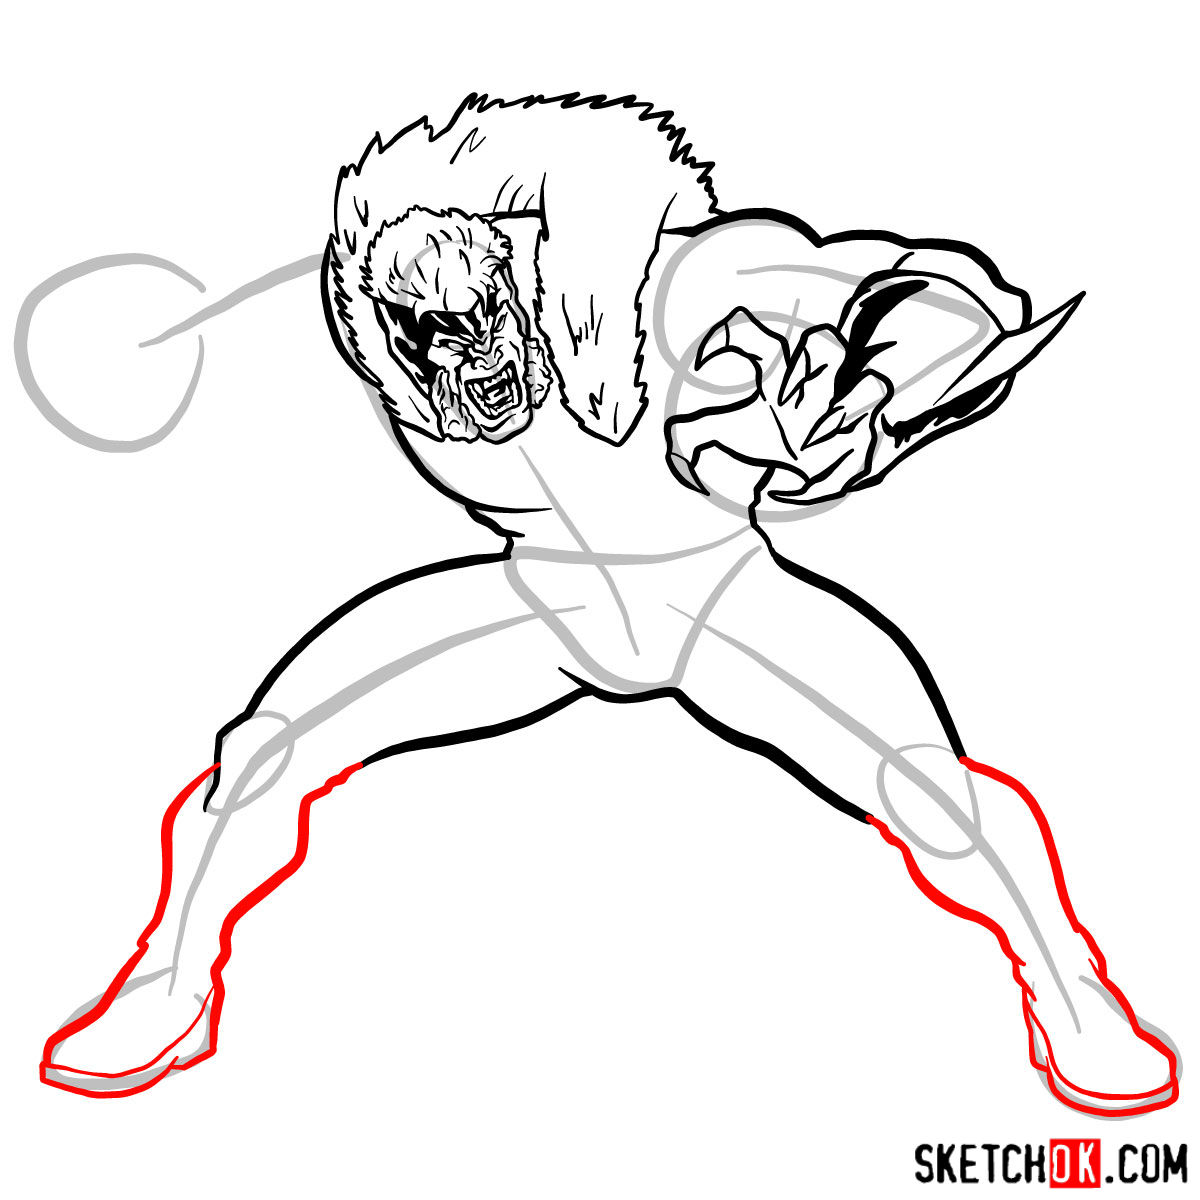 How to draw Sabretooth (X-Men mutant) - step 10